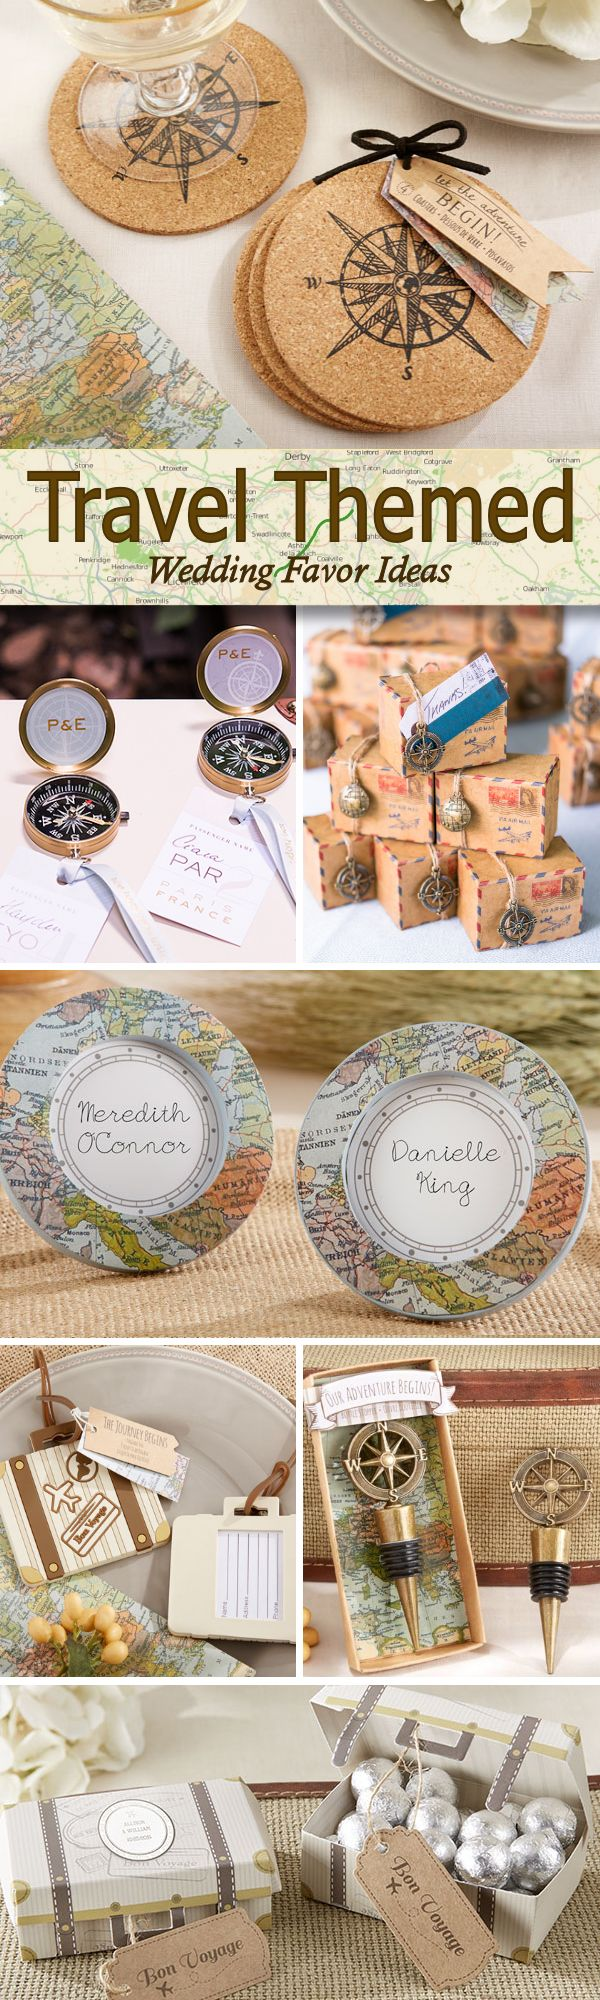 50 Fun Travel Themed Wedding Favor Ideas   Nice to #DIY and customize with France maps, and #Chambiers geographical situation, an original idea for sure !